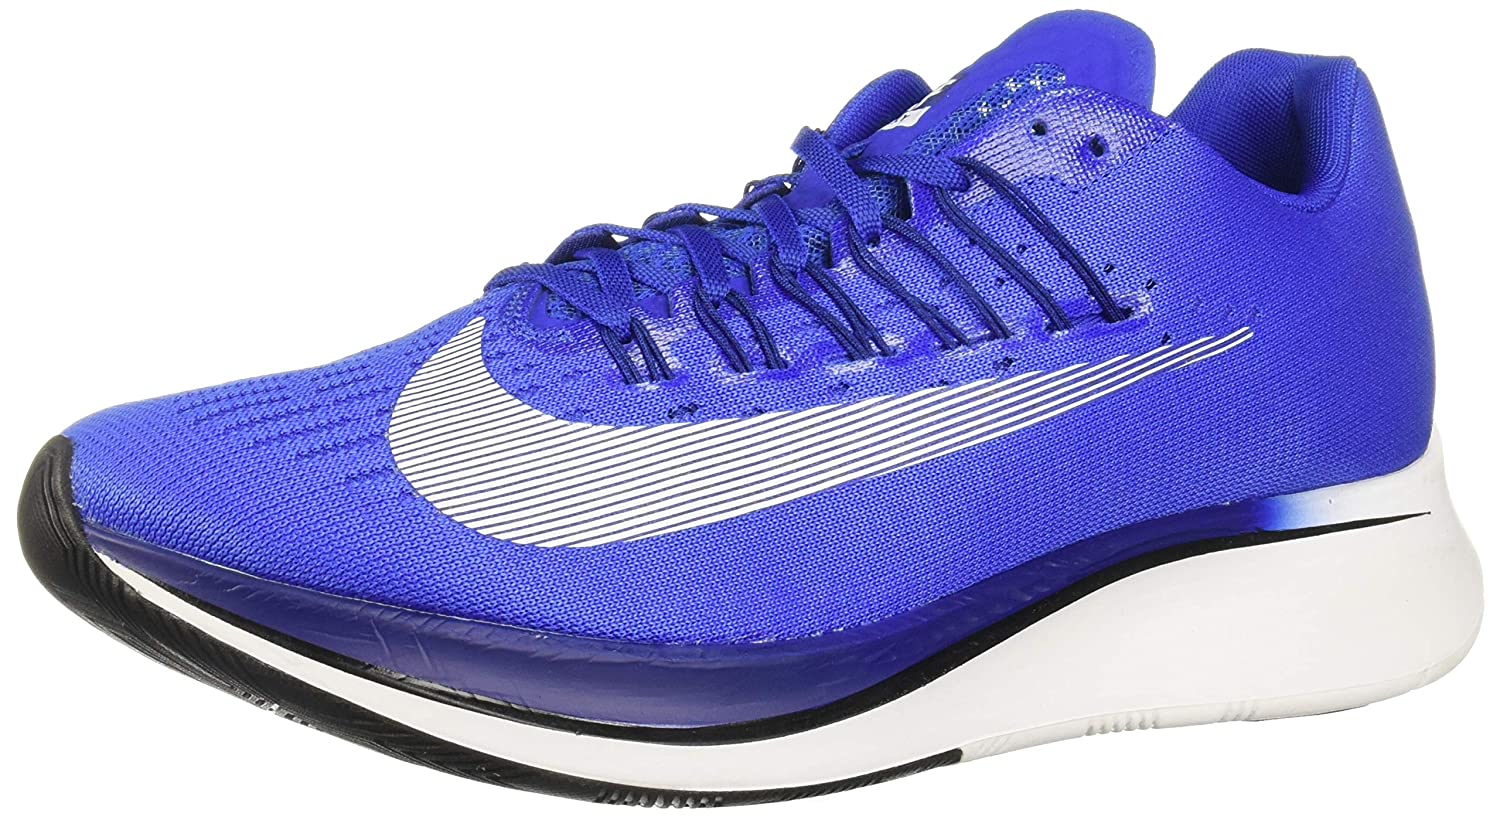 Hyper Royal White Deep Royal bluee Black Nike Mens Zoom Fly SP Lightweight Trainer Running shoes